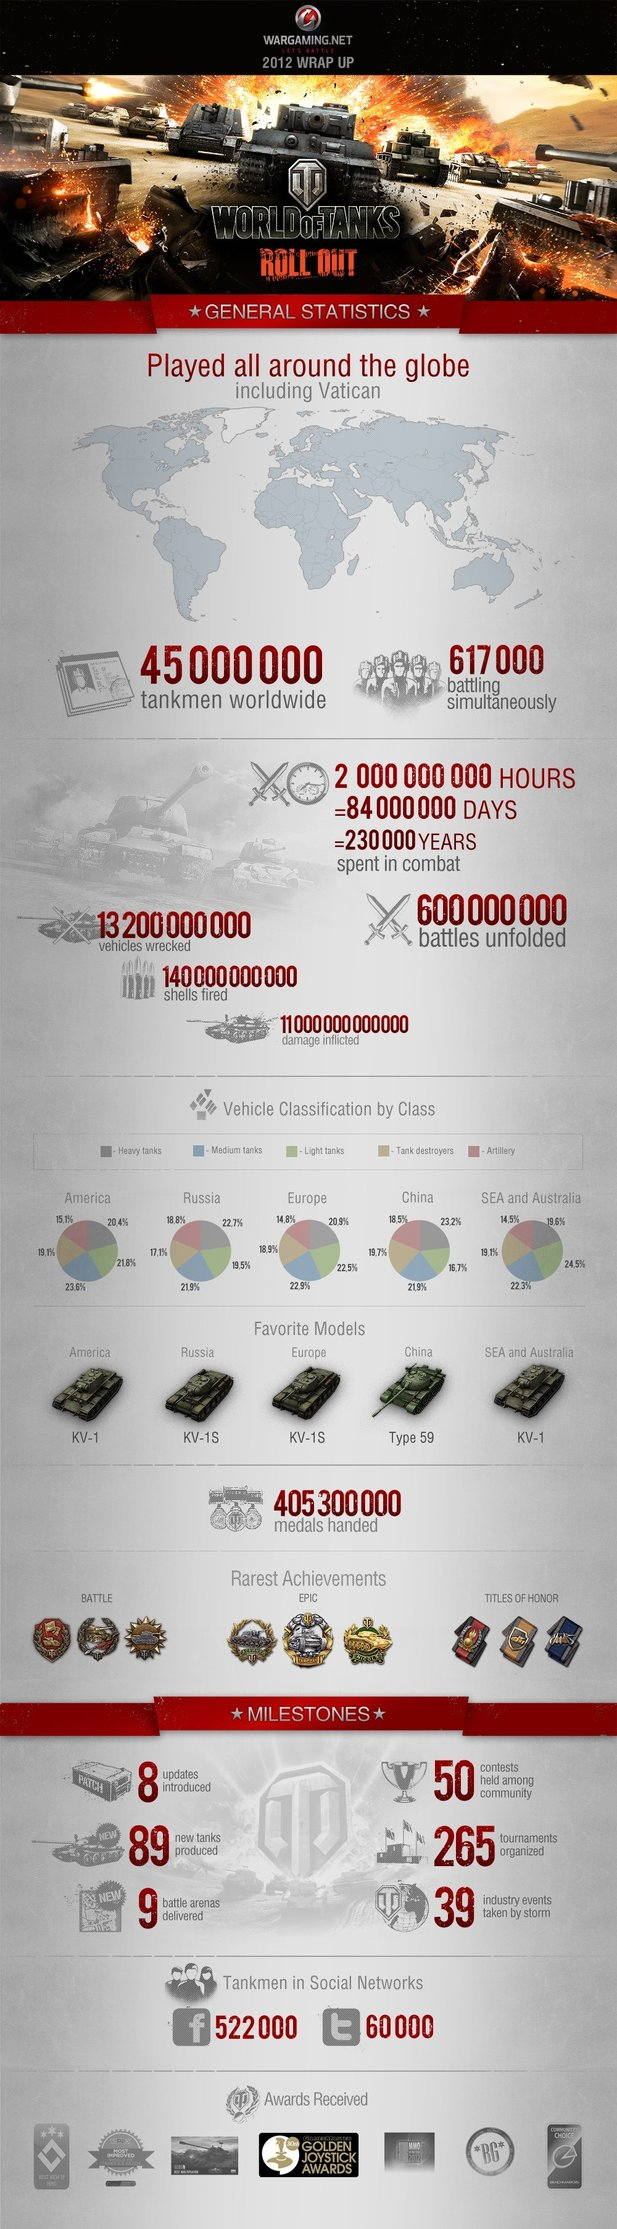 Allerhand Statistiken zu World of Tanks.